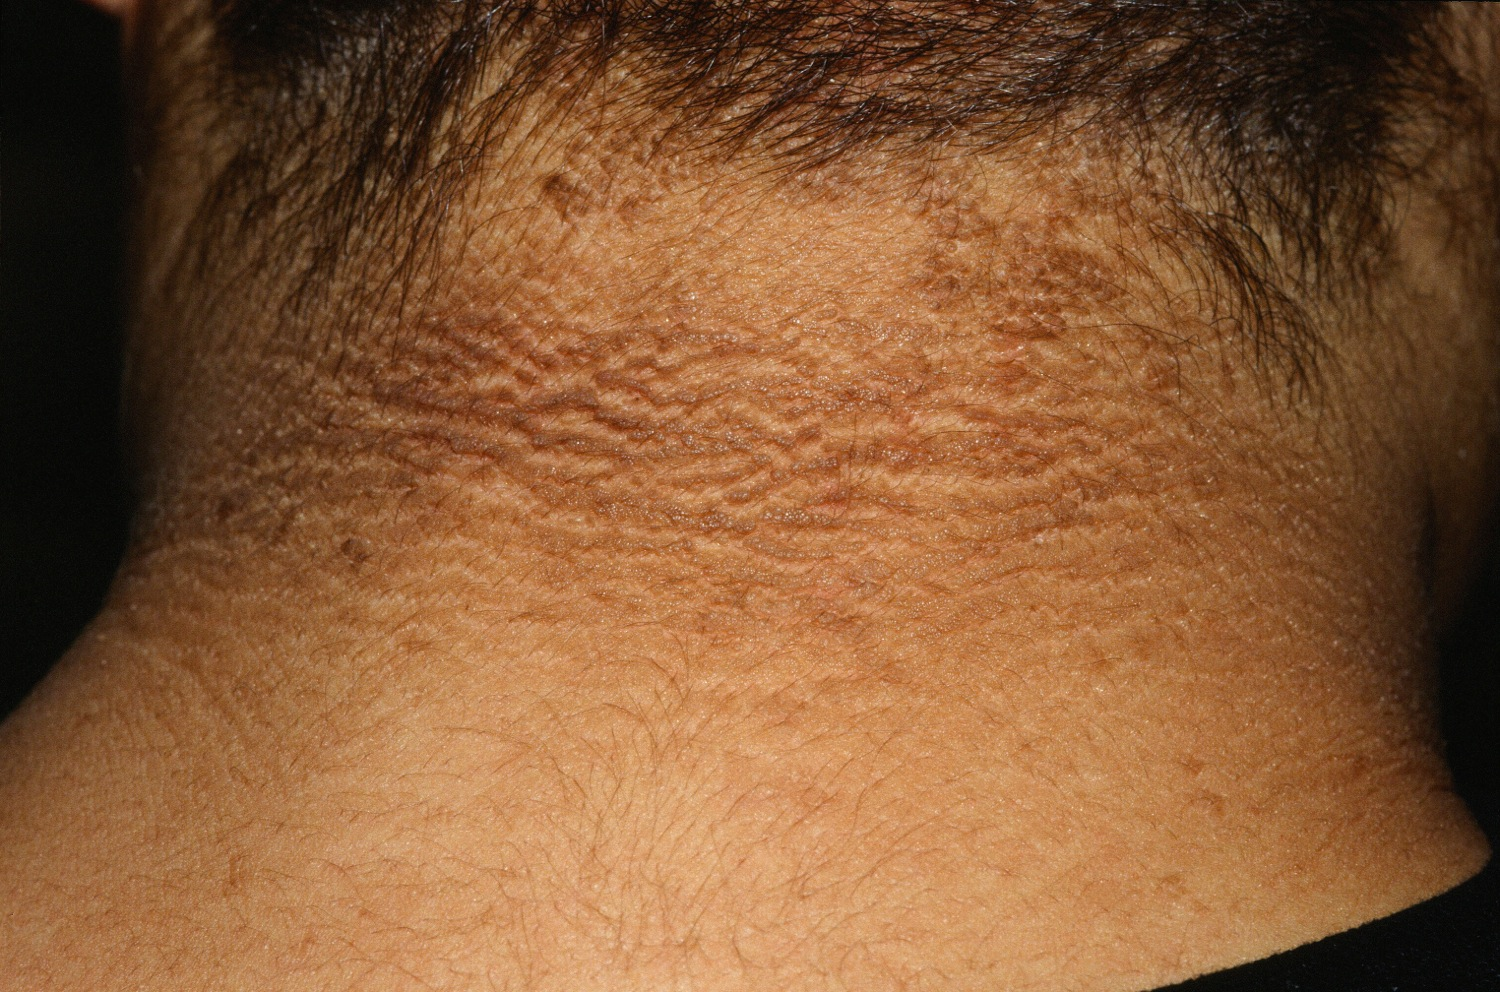 It Could Be Acanthosis Nigricans